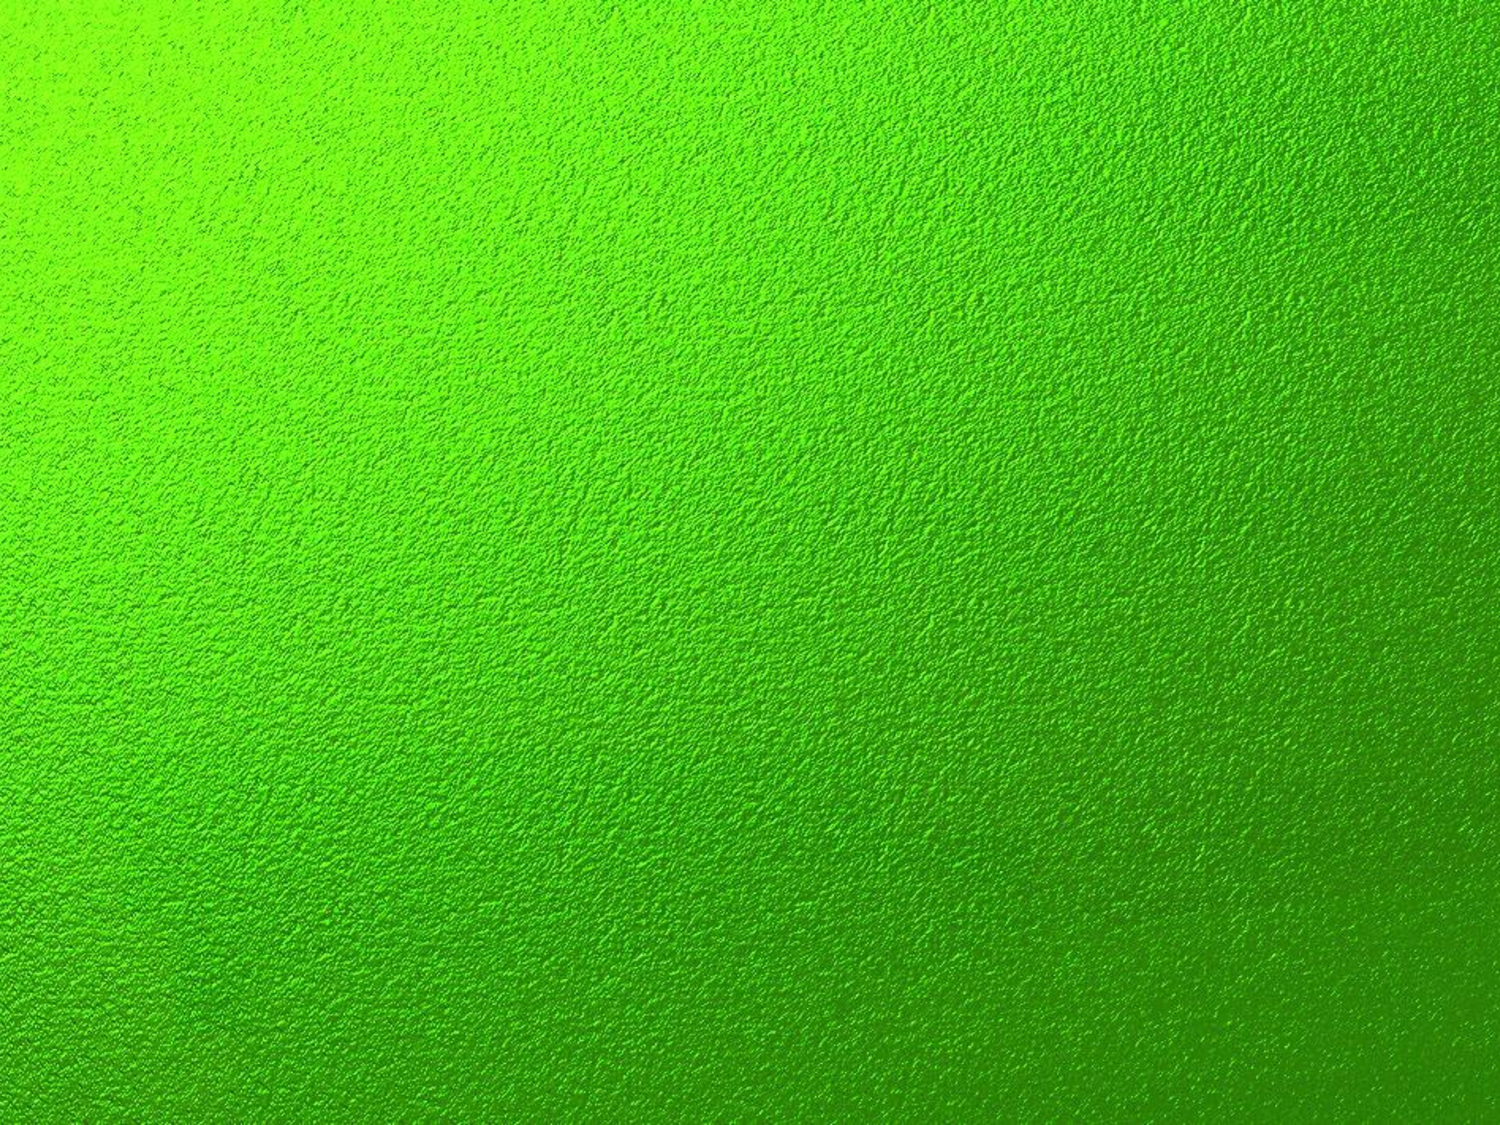 Lime Green Backgrounds - WallpaperSafari Lime Green Texture Background